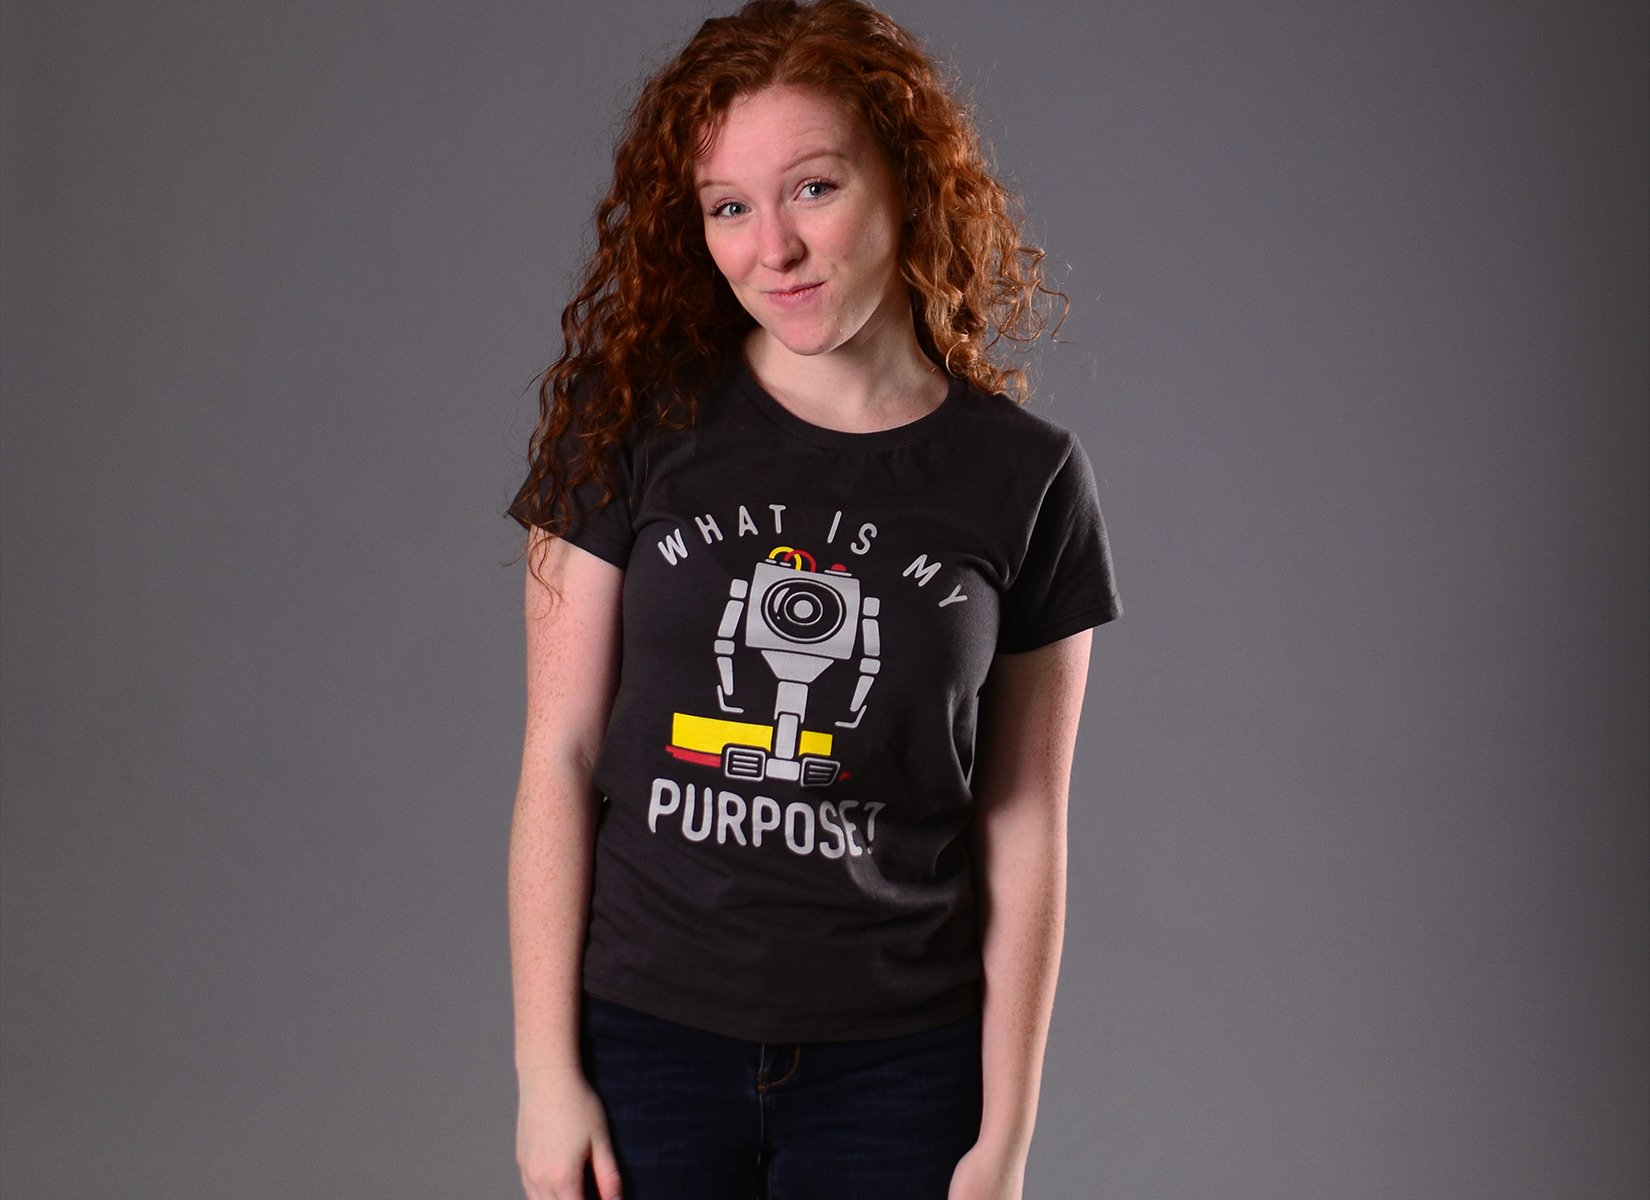 What Is My Purpose? on Womens T-Shirt